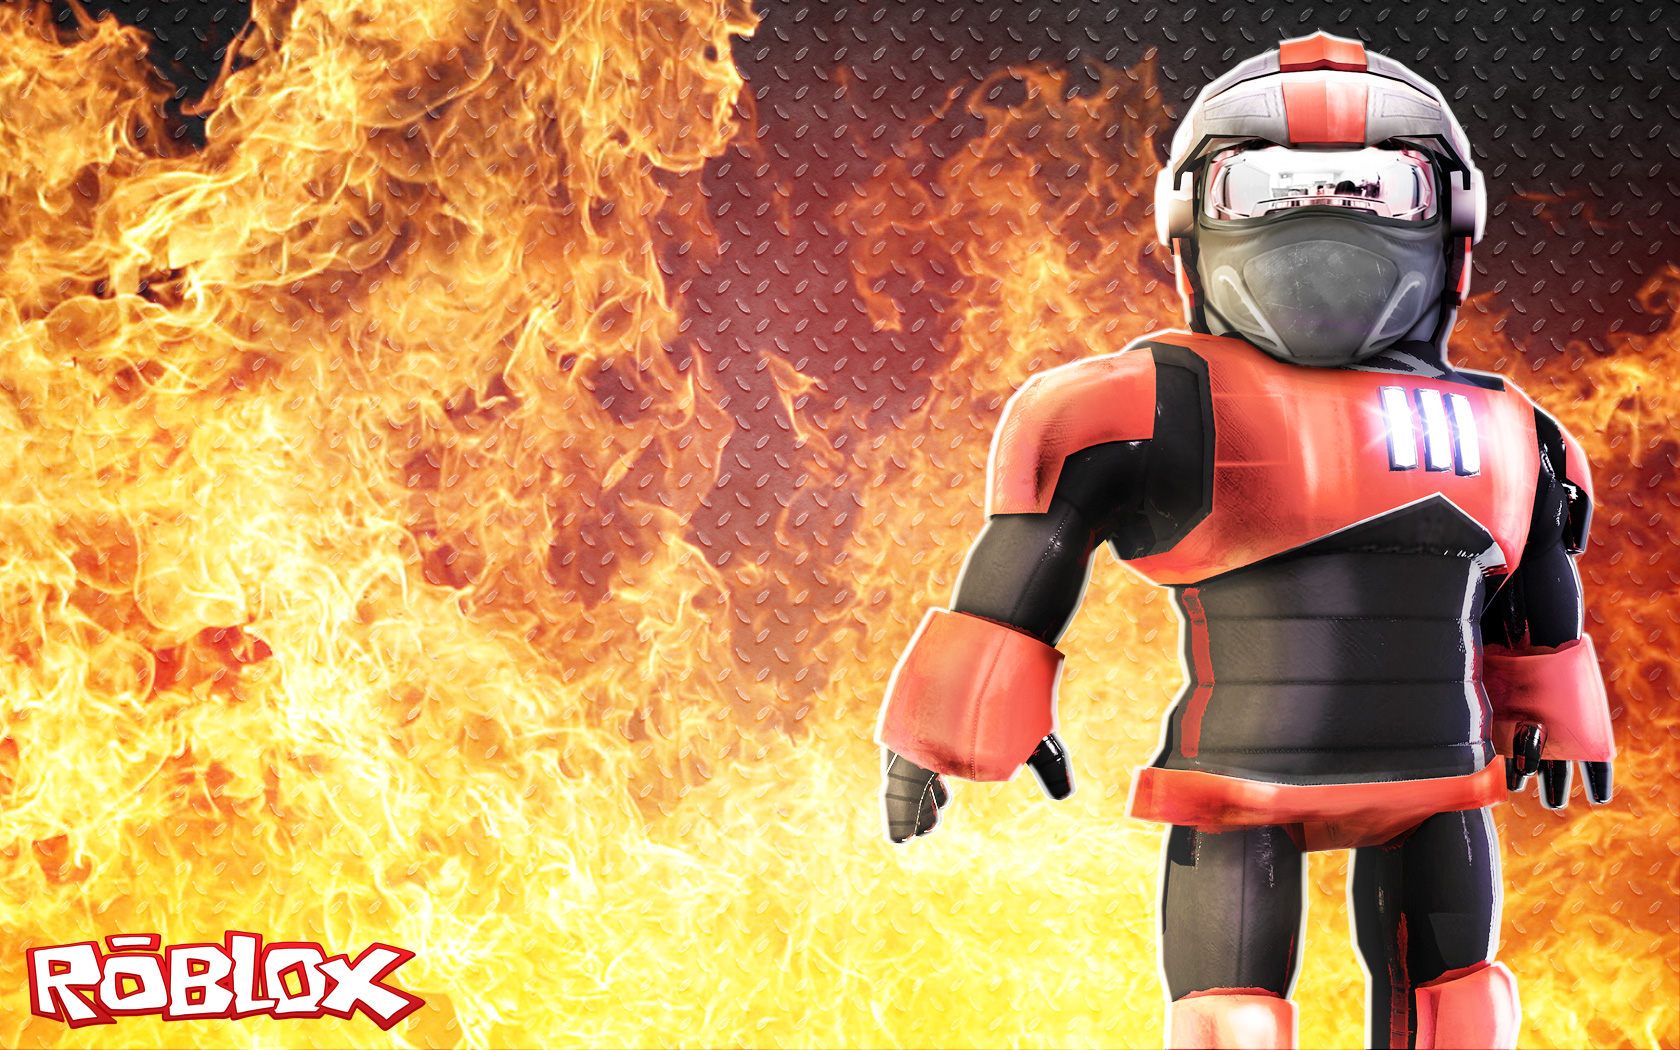 Wallpapers ROBLOX Blog Informing and empowering ROBLOXians 1680x1050